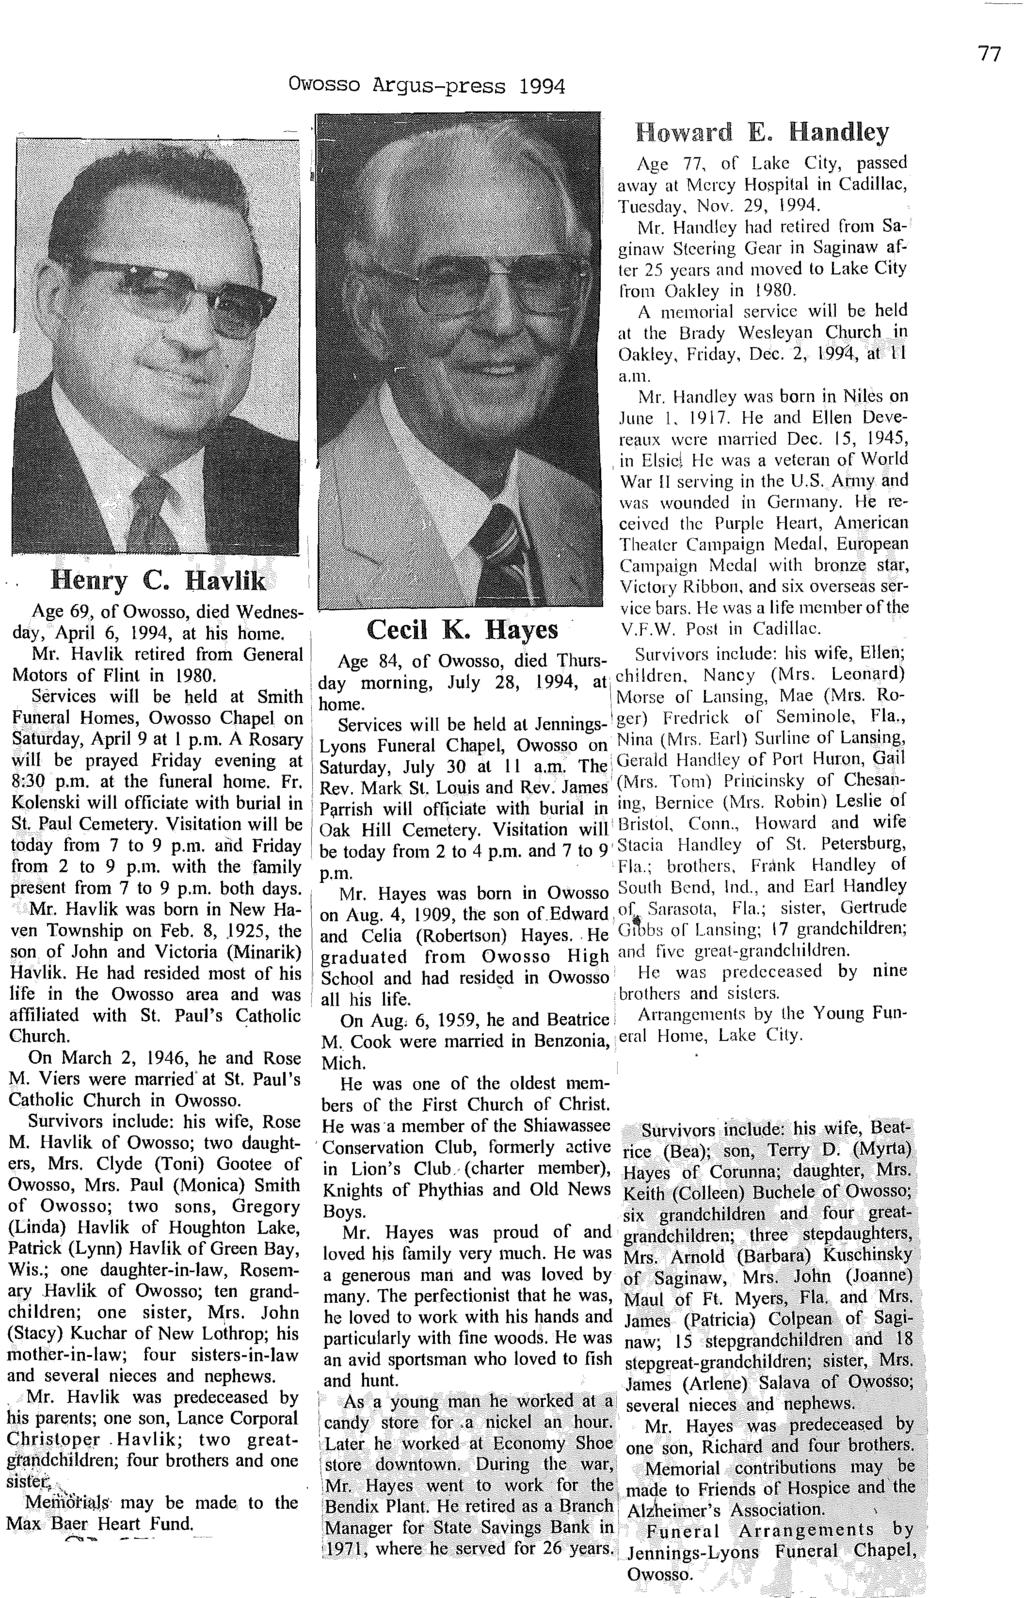 Owosso Argus-press 1994 E. Handley Age 77, of Lake City, passed away at Mercy Hospital in Cadillac, TtlCsday, Nov. 29, 1994. Mr.